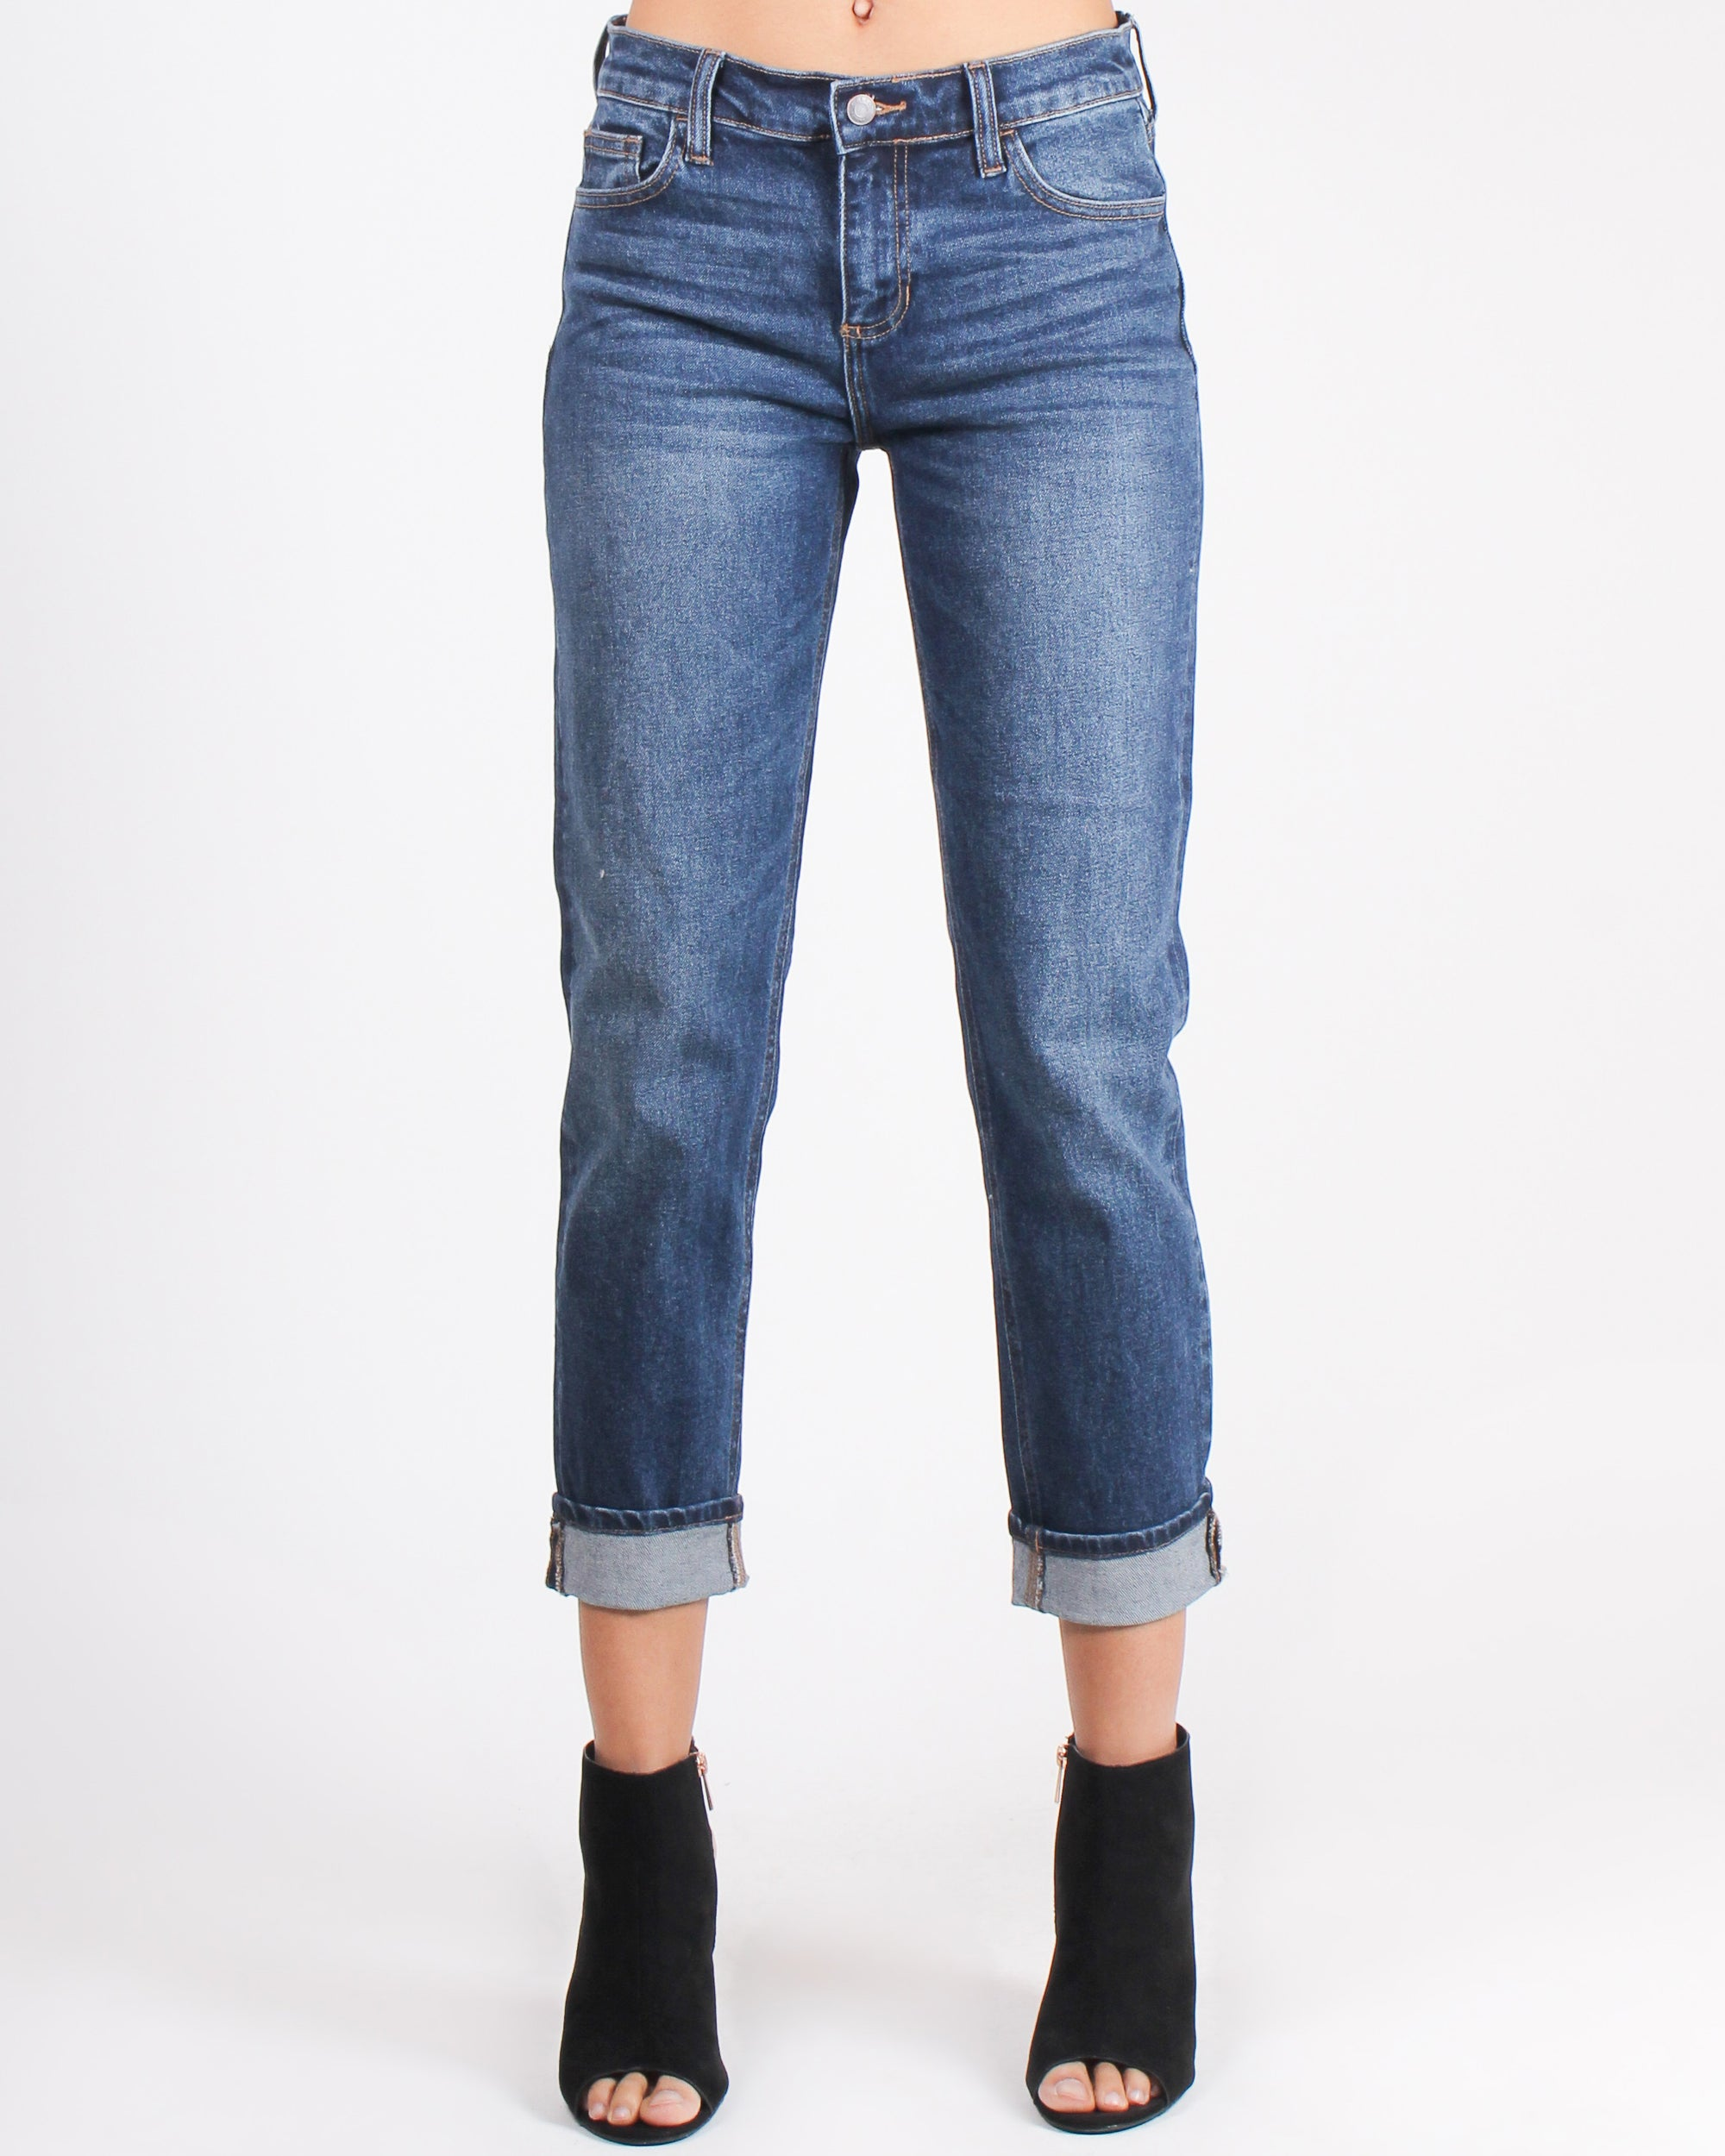 Fashion Q Shop Q Walk like You Own the Place Boyfriend Jeans WV17021BF